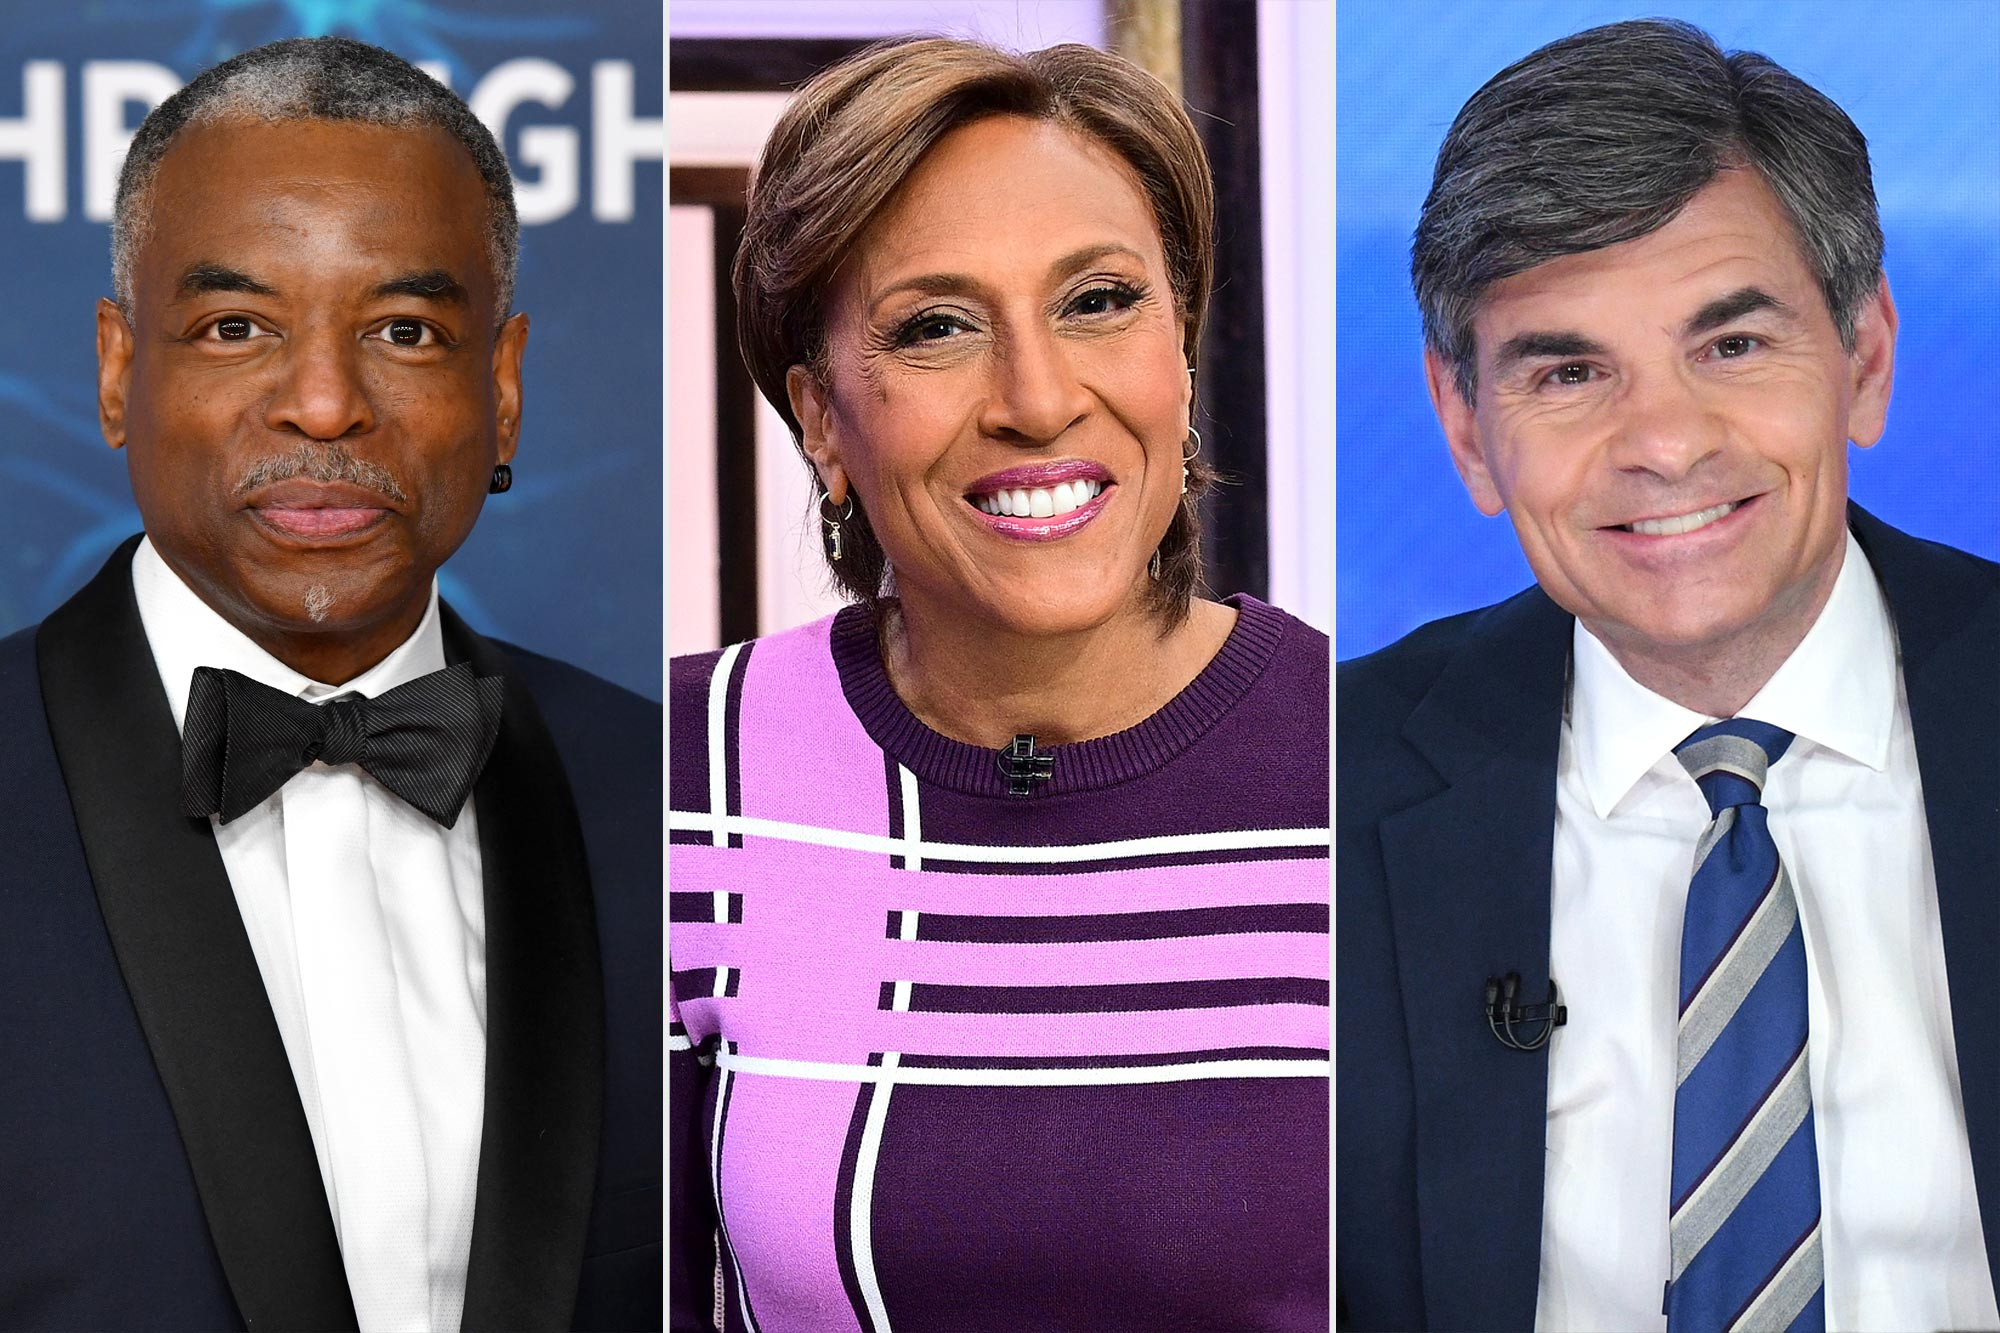 LeVar Burton, Robin Roberts, and George Stephanopoulos